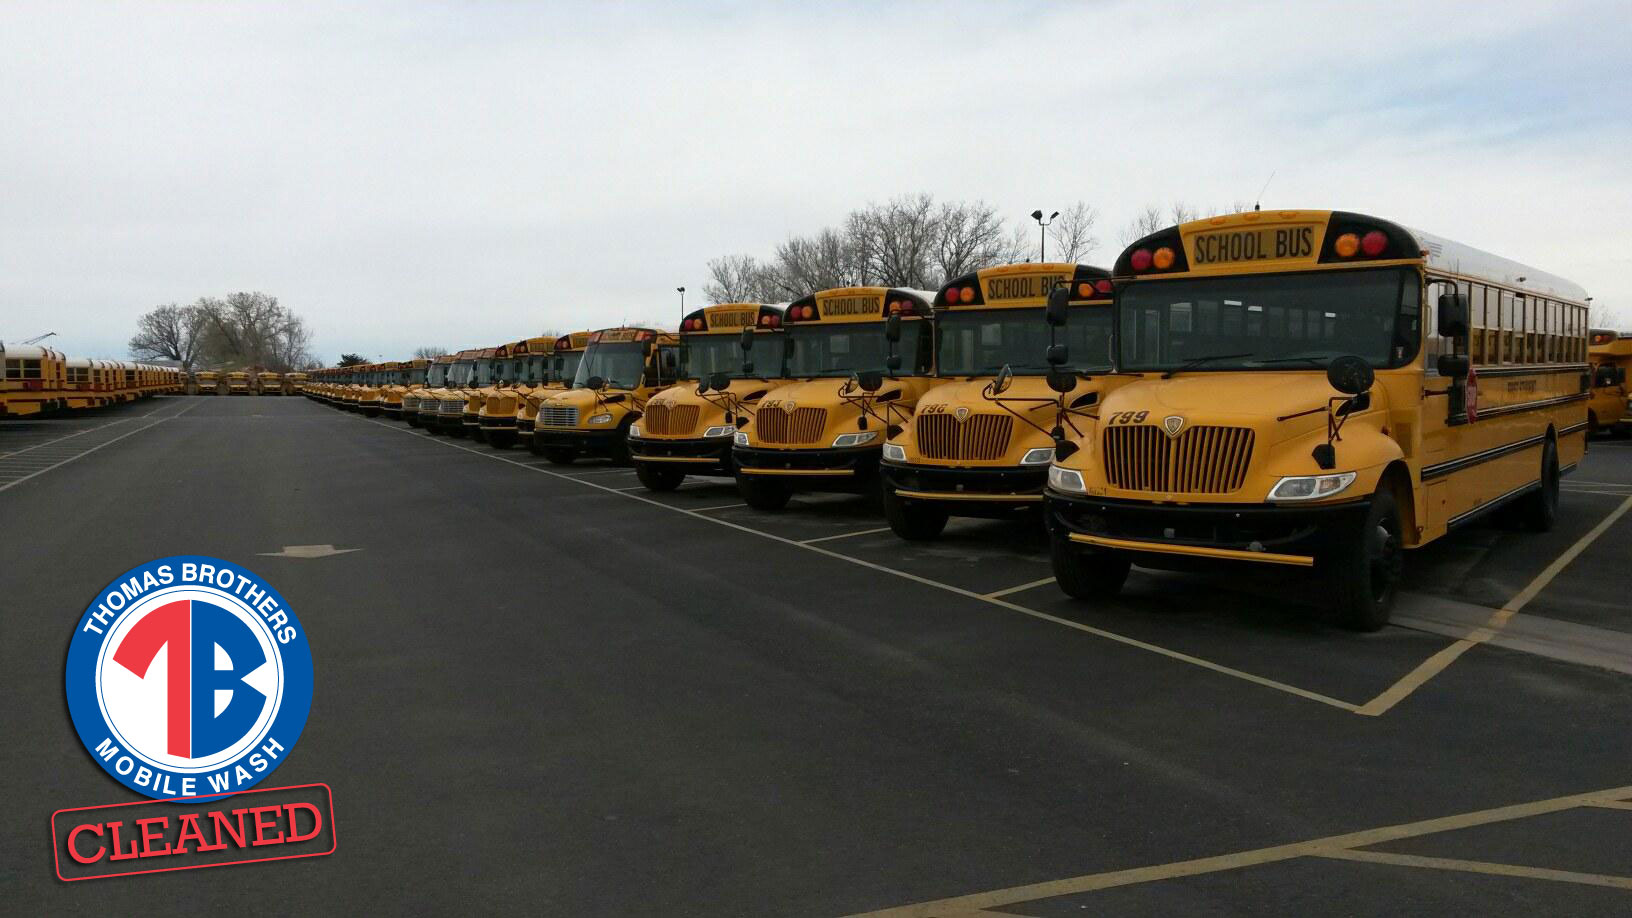 powerwashed_school_buses.jpg